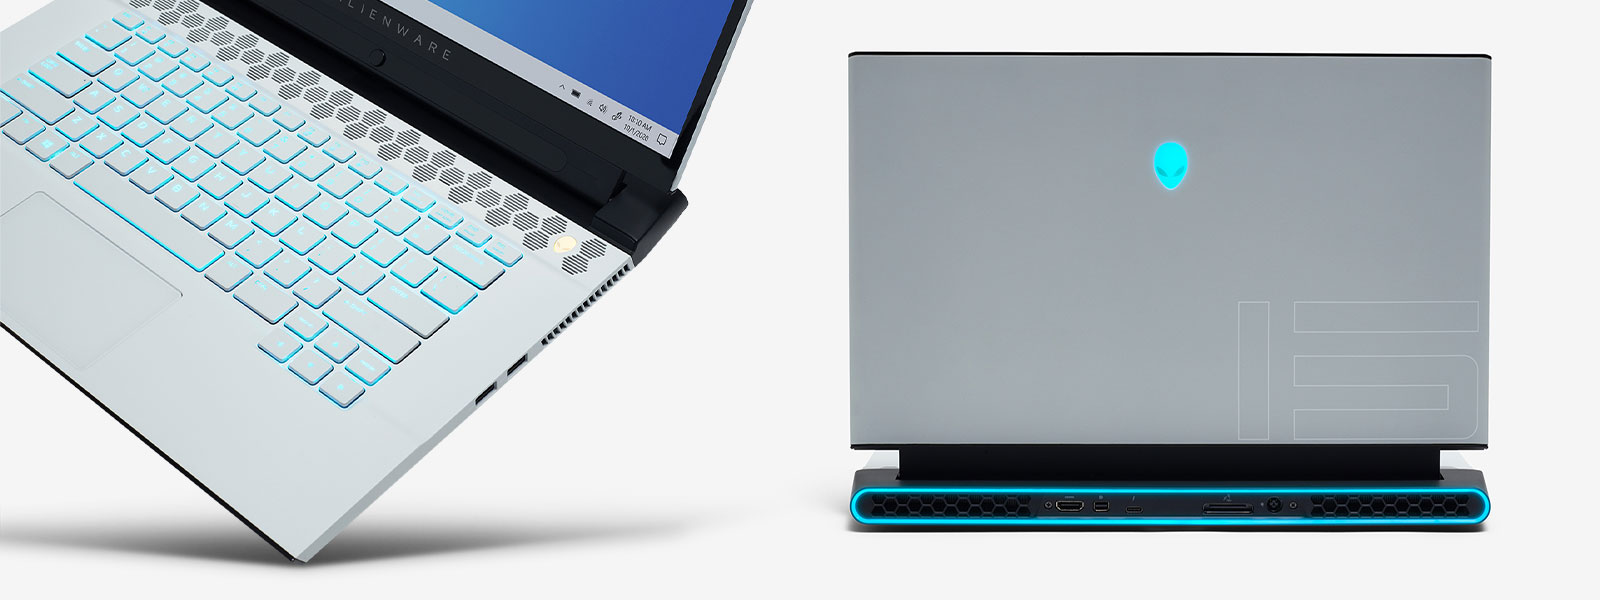 A collection of windows 10 Gaming PCs